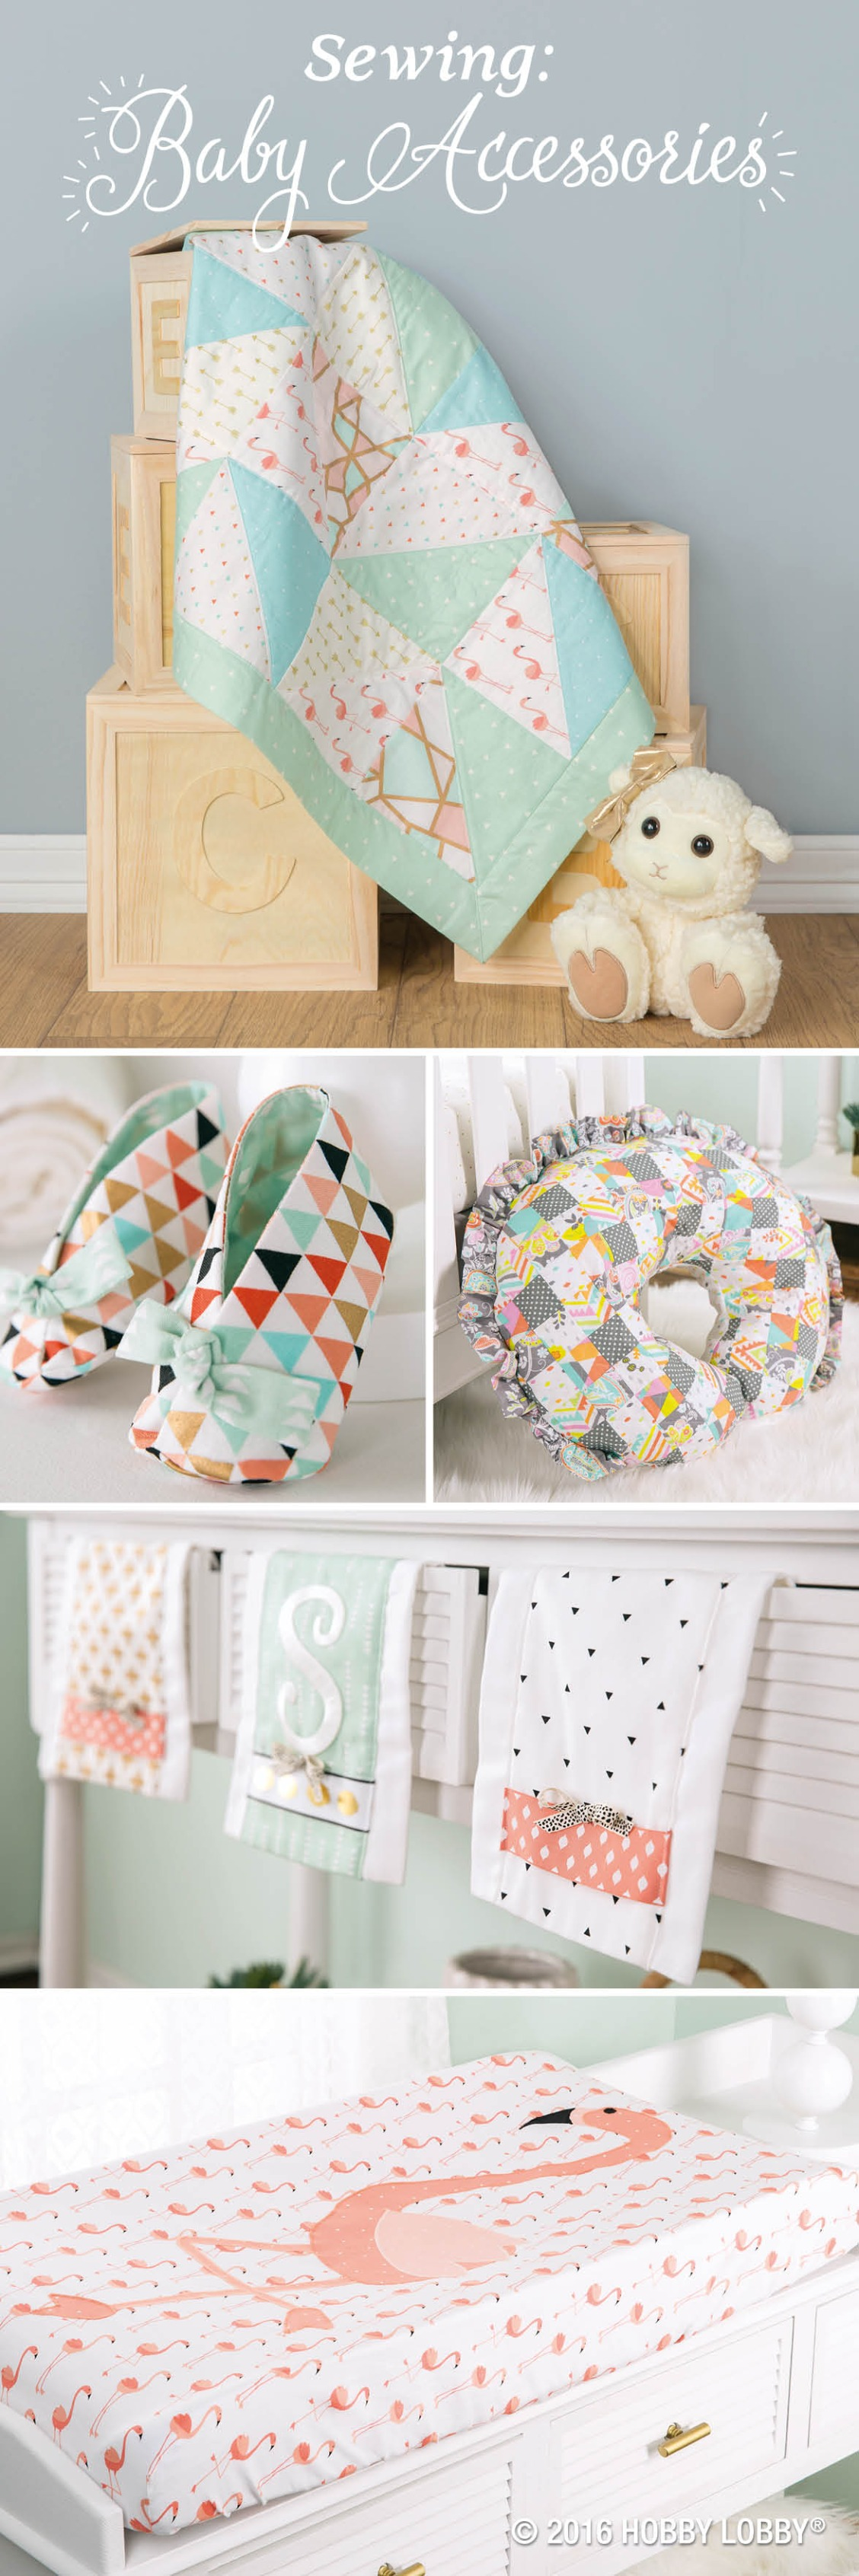 Surround your little one with DIYs full of comforting ...